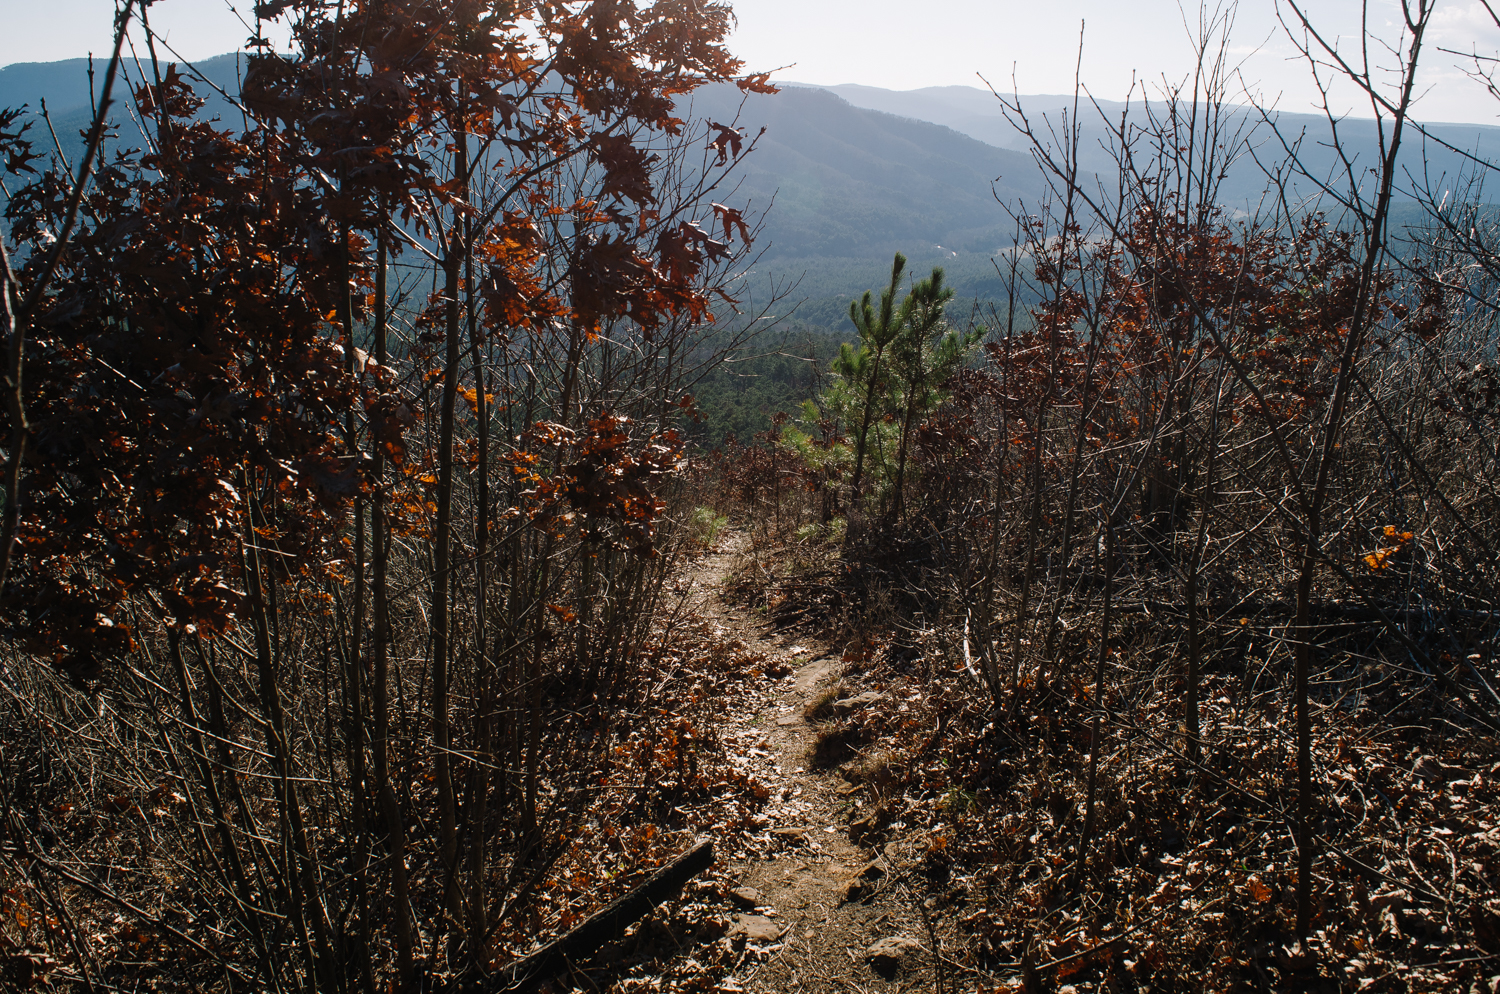 The trail and views up to the Arkansas Sphinx.